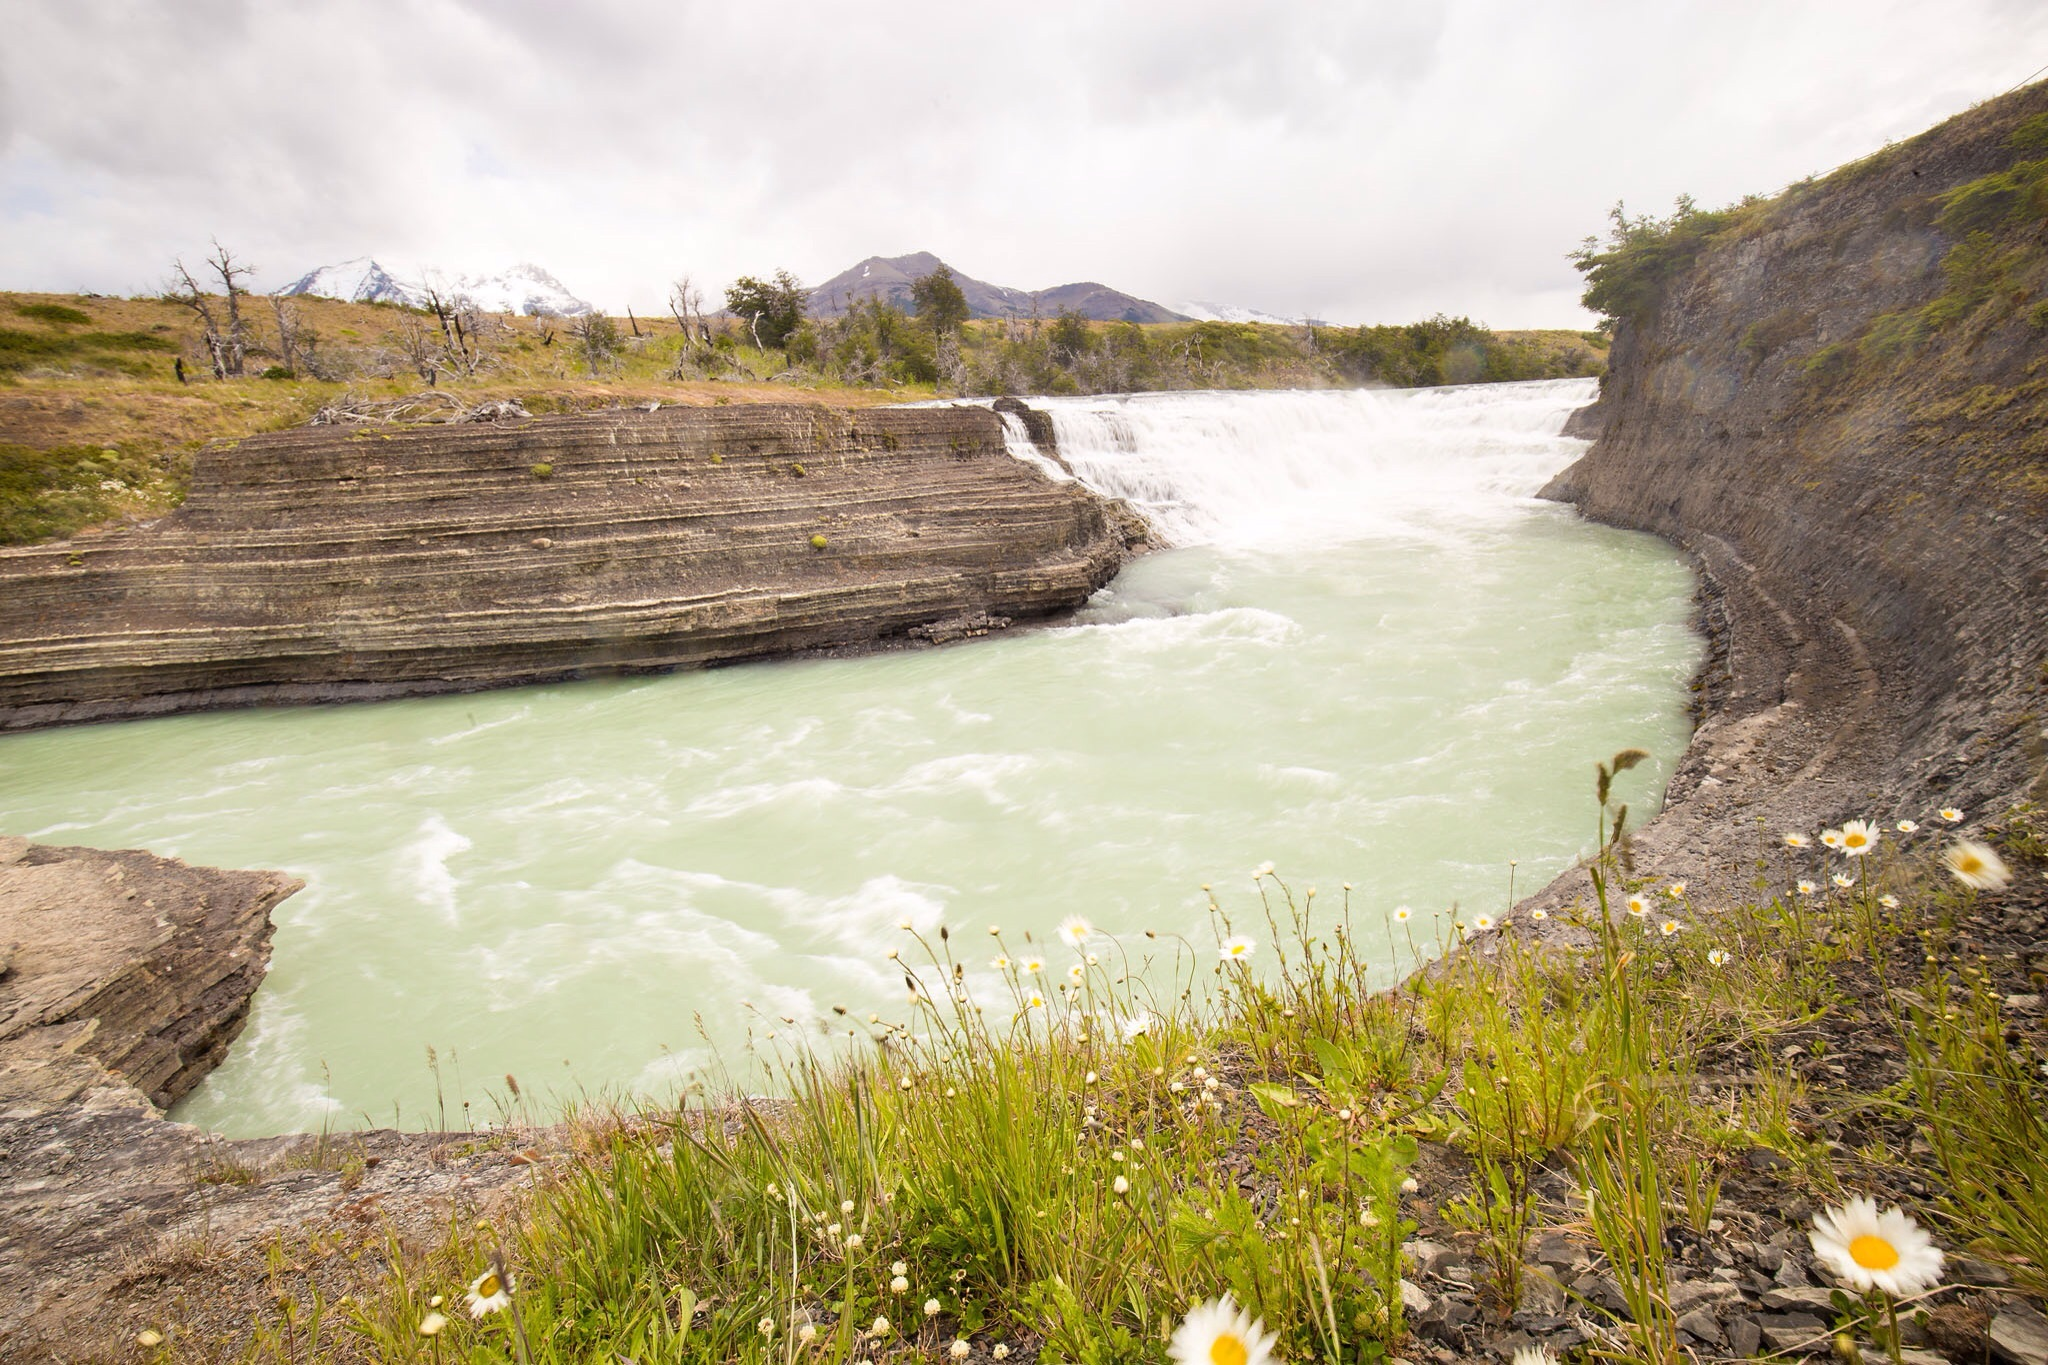 Wedding-Travellers-Overlanding-Destination-Wedding-Chile-Torres-del-Paine-waterfall-river-cliff